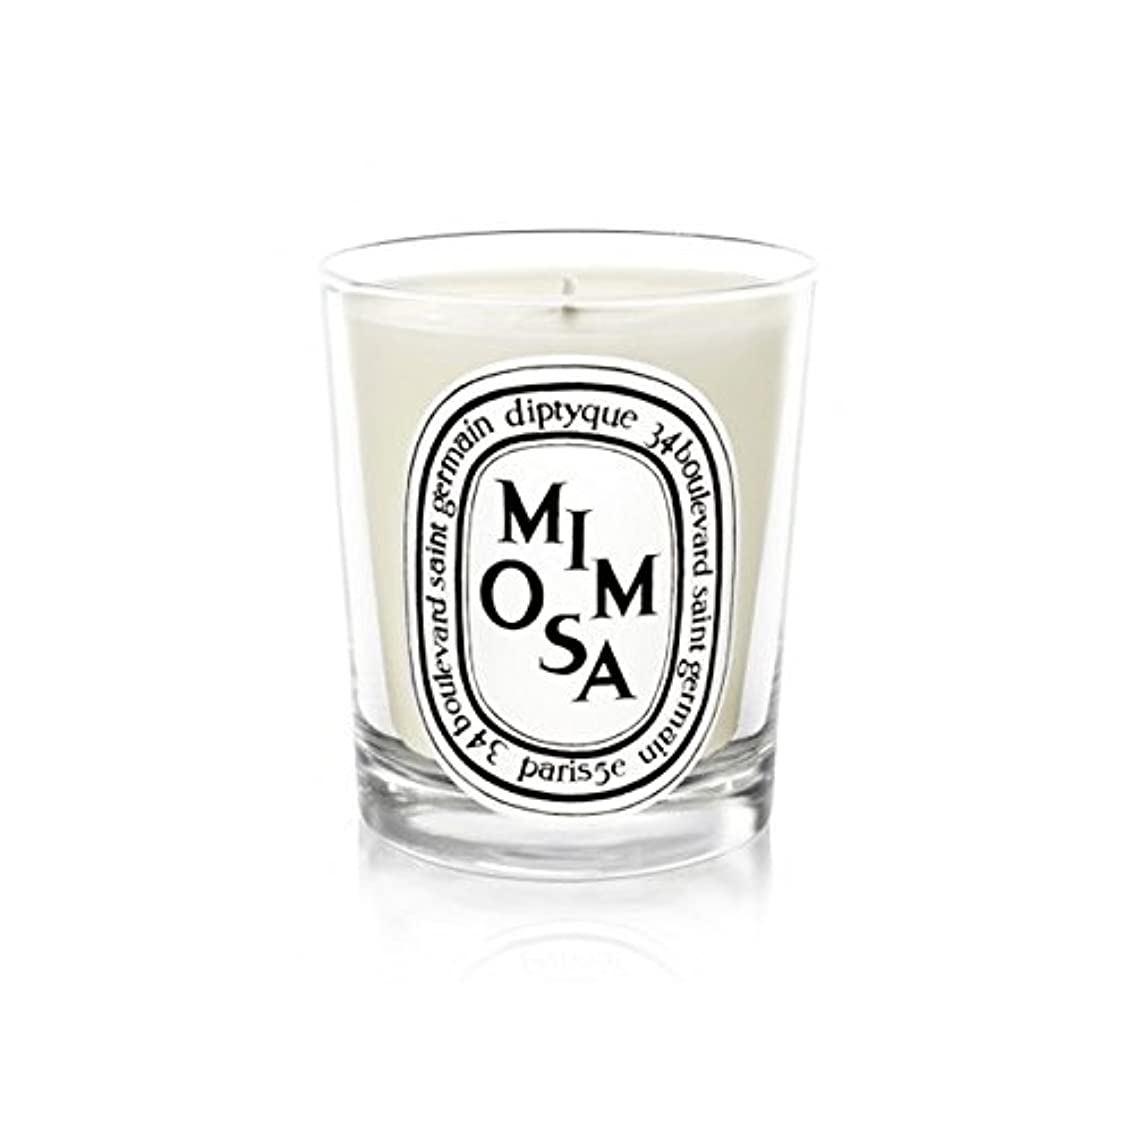 Diptyque Candle Mimosa / Mimosa 70g (Pack of 6) - Diptyqueキャンドルミモザ/ミモザの70グラム (x6) [並行輸入品]